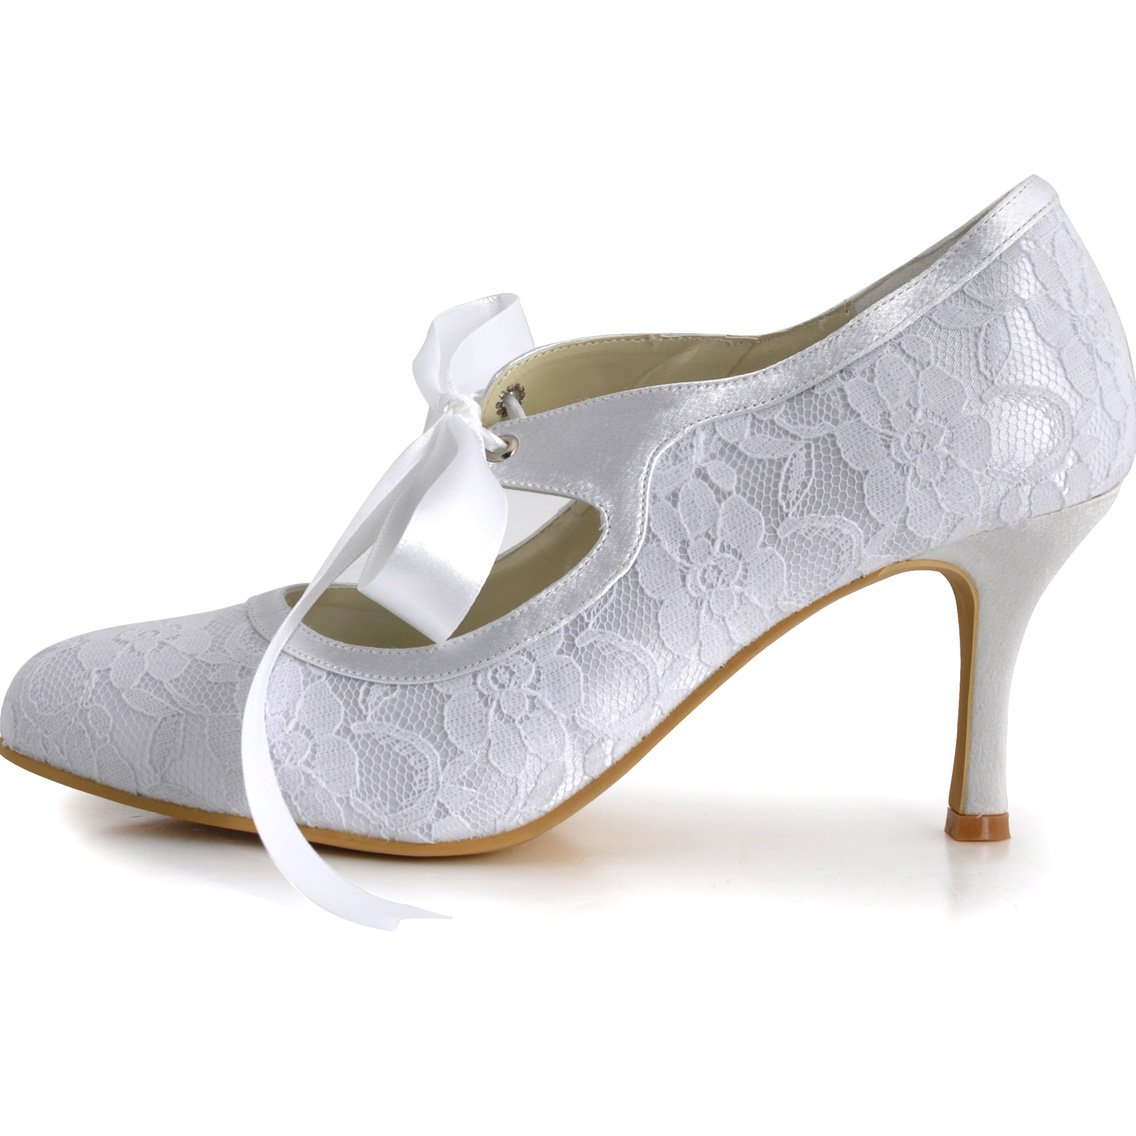 ElegantPark Women Mary Jane Closed Toe High Heel Pumps Lace Wedding Dress Shoes 1